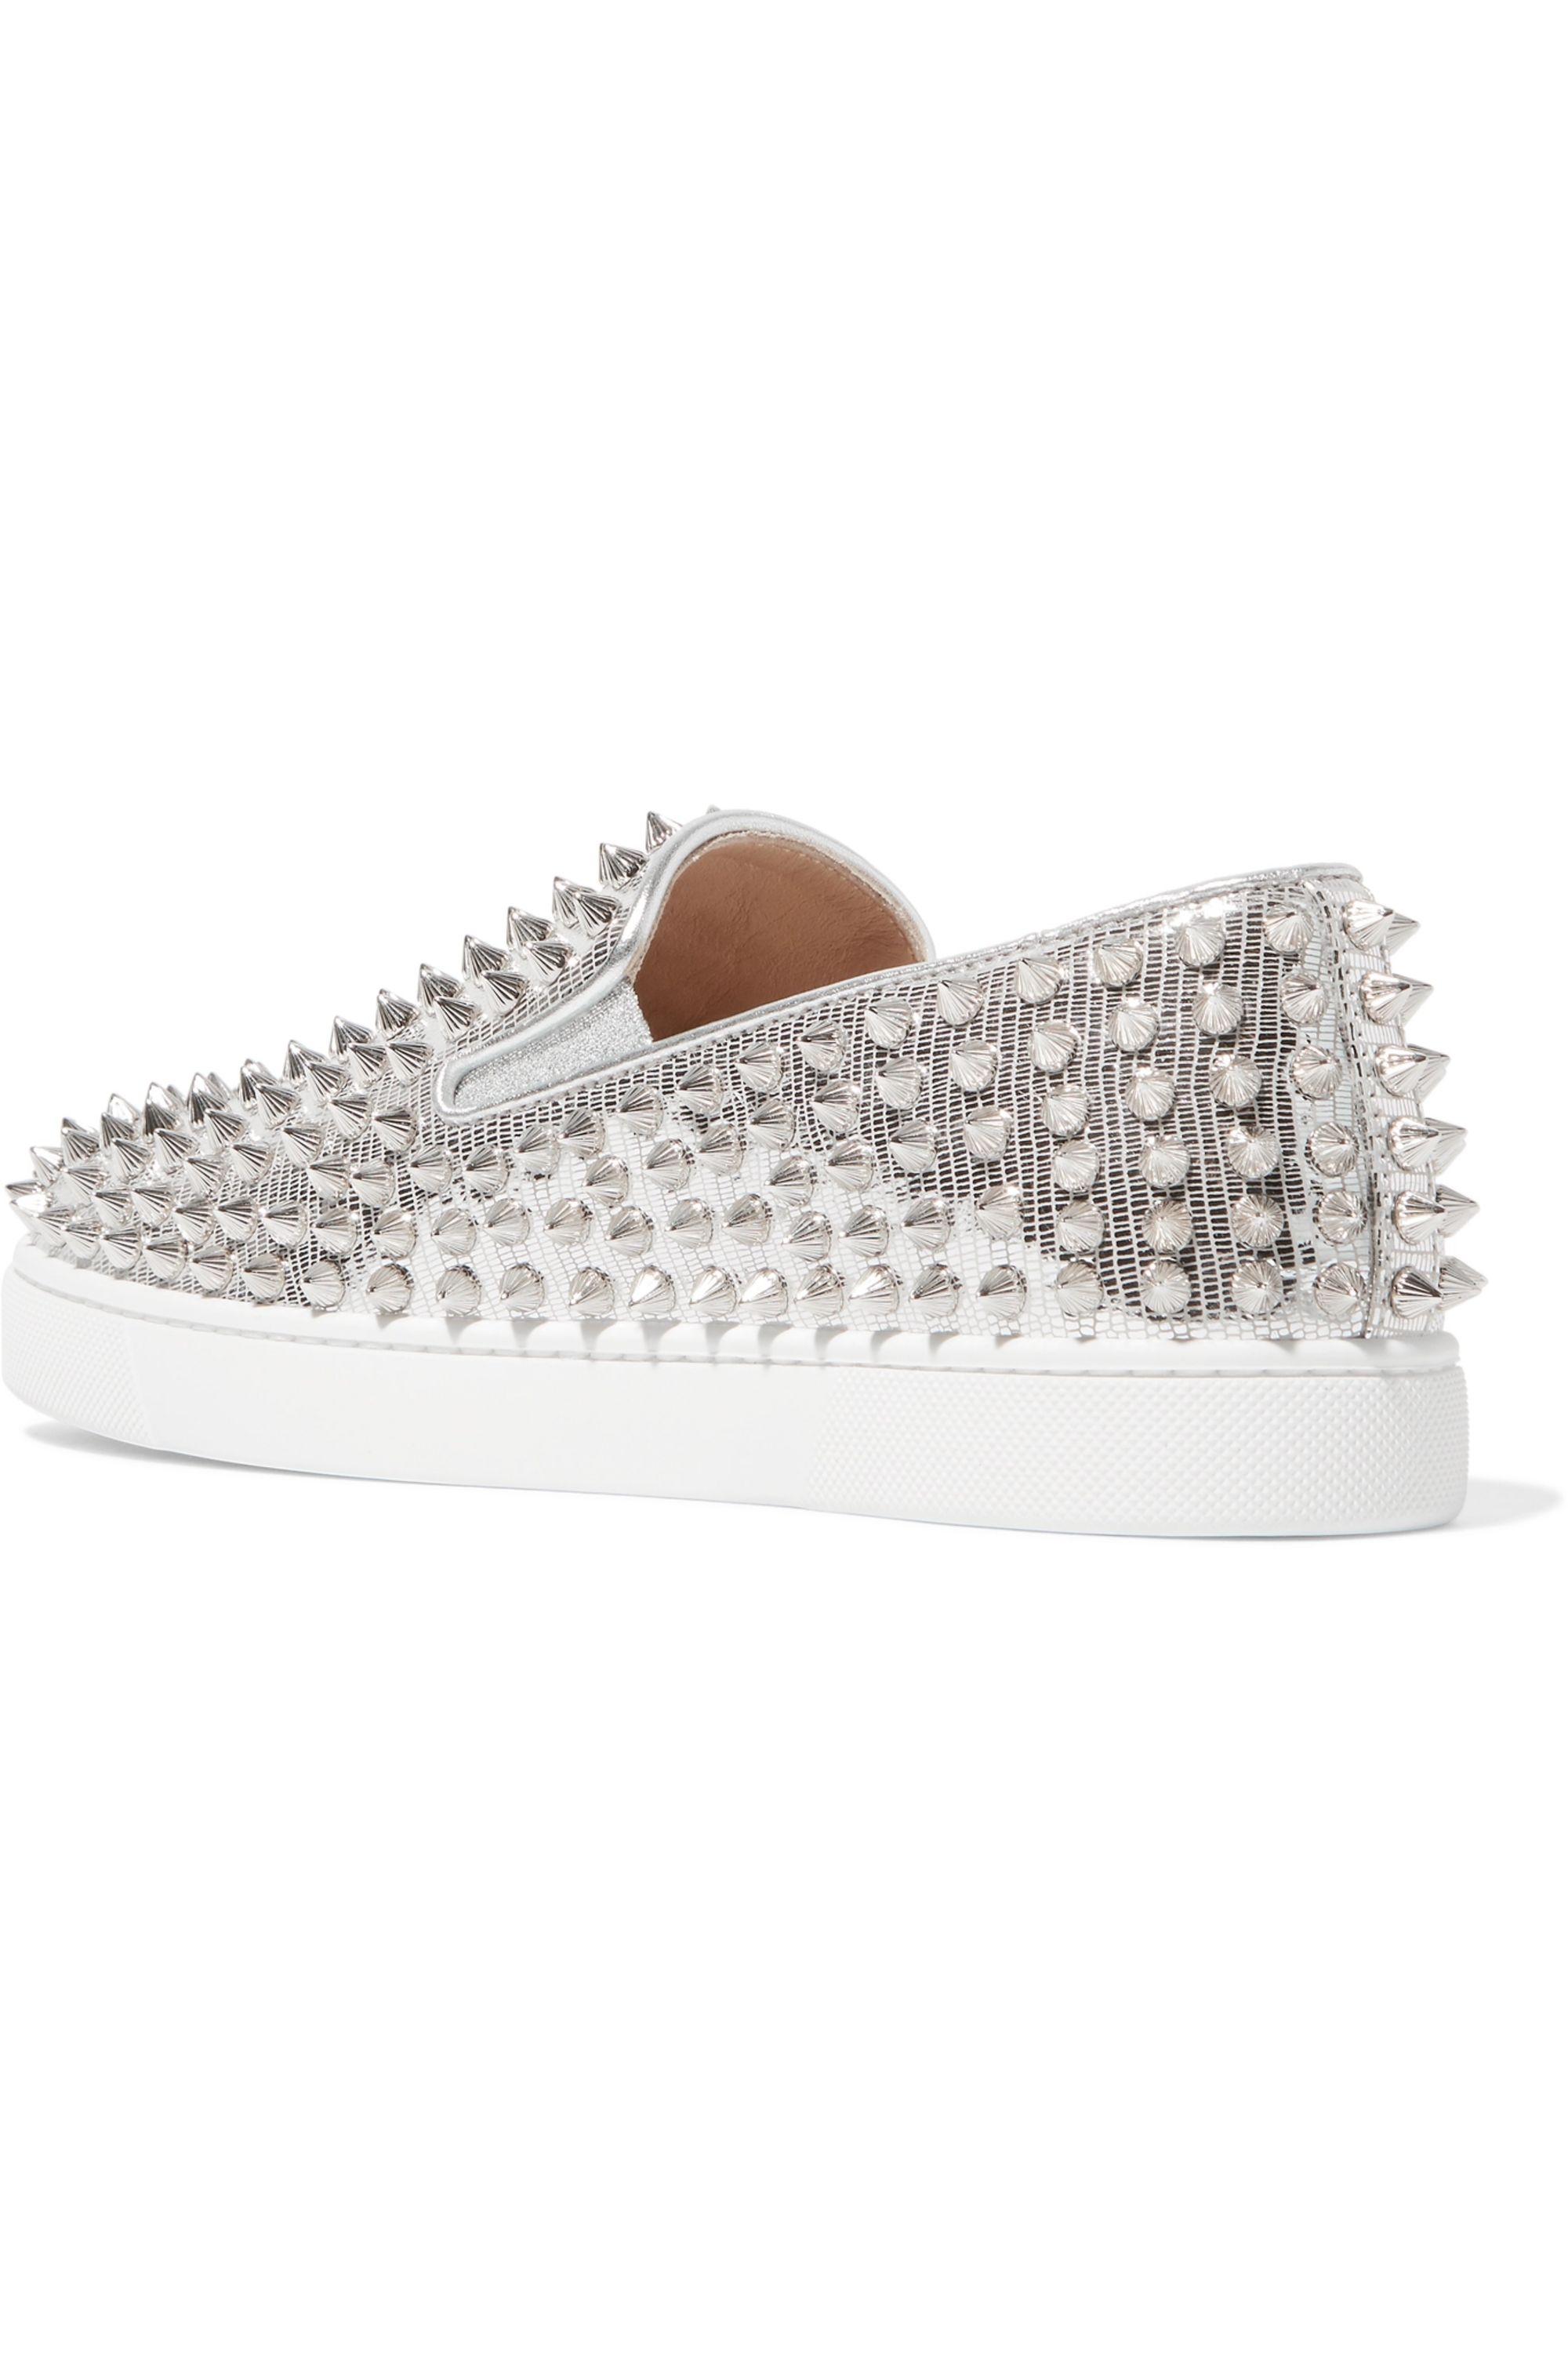 Christian Louboutin Roller Boat spiked metallic textured-leather slip-on sneakers